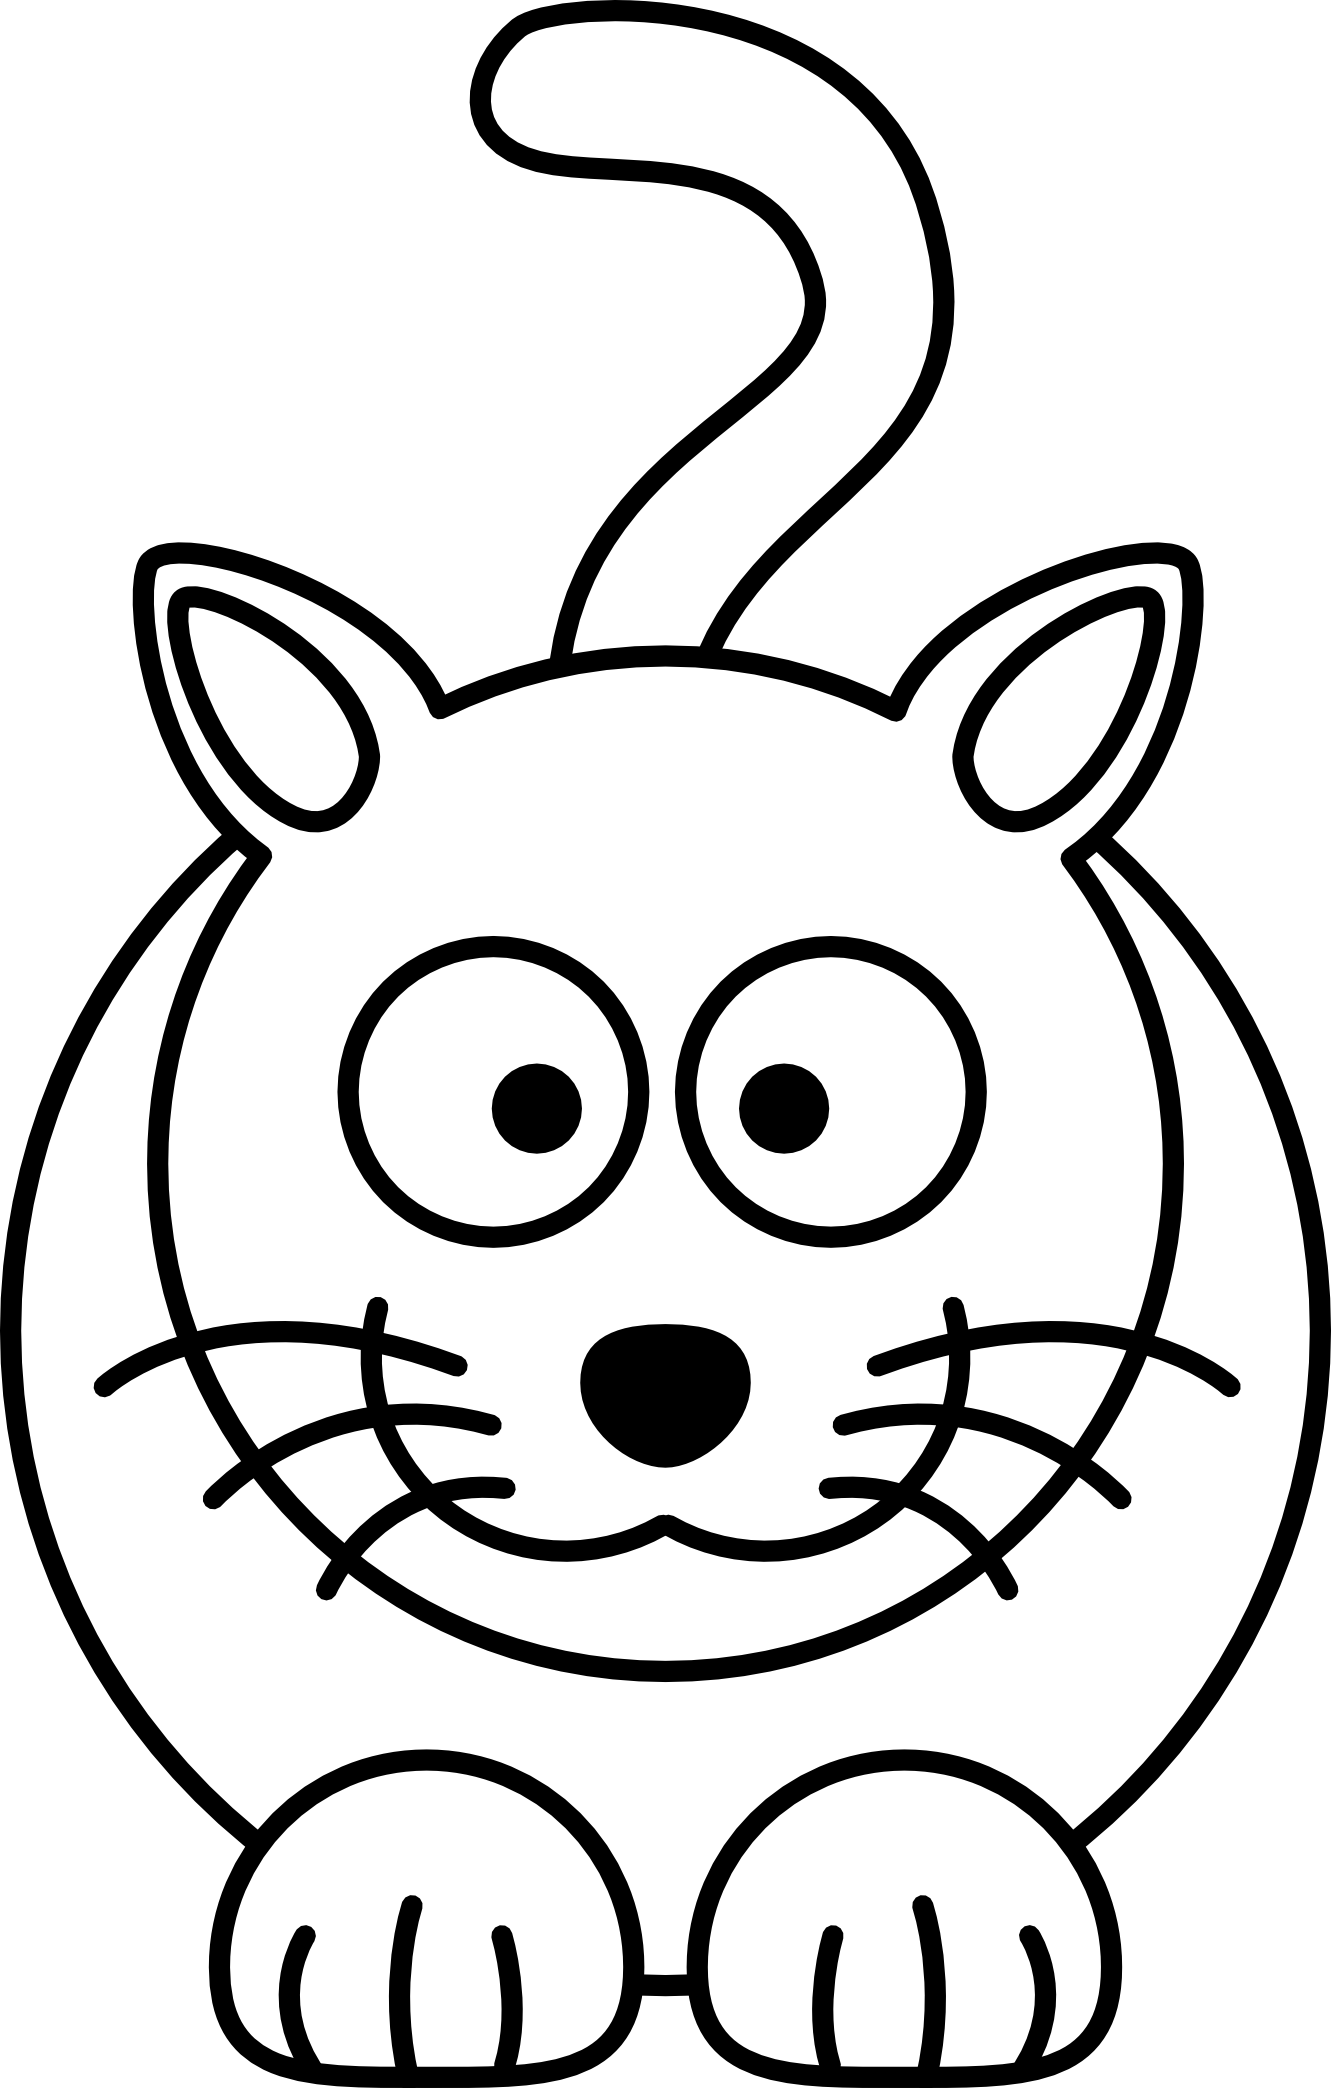 1331x2088 Lemmling Cartoon Cat Black White Line Art Coloring Book Colouring